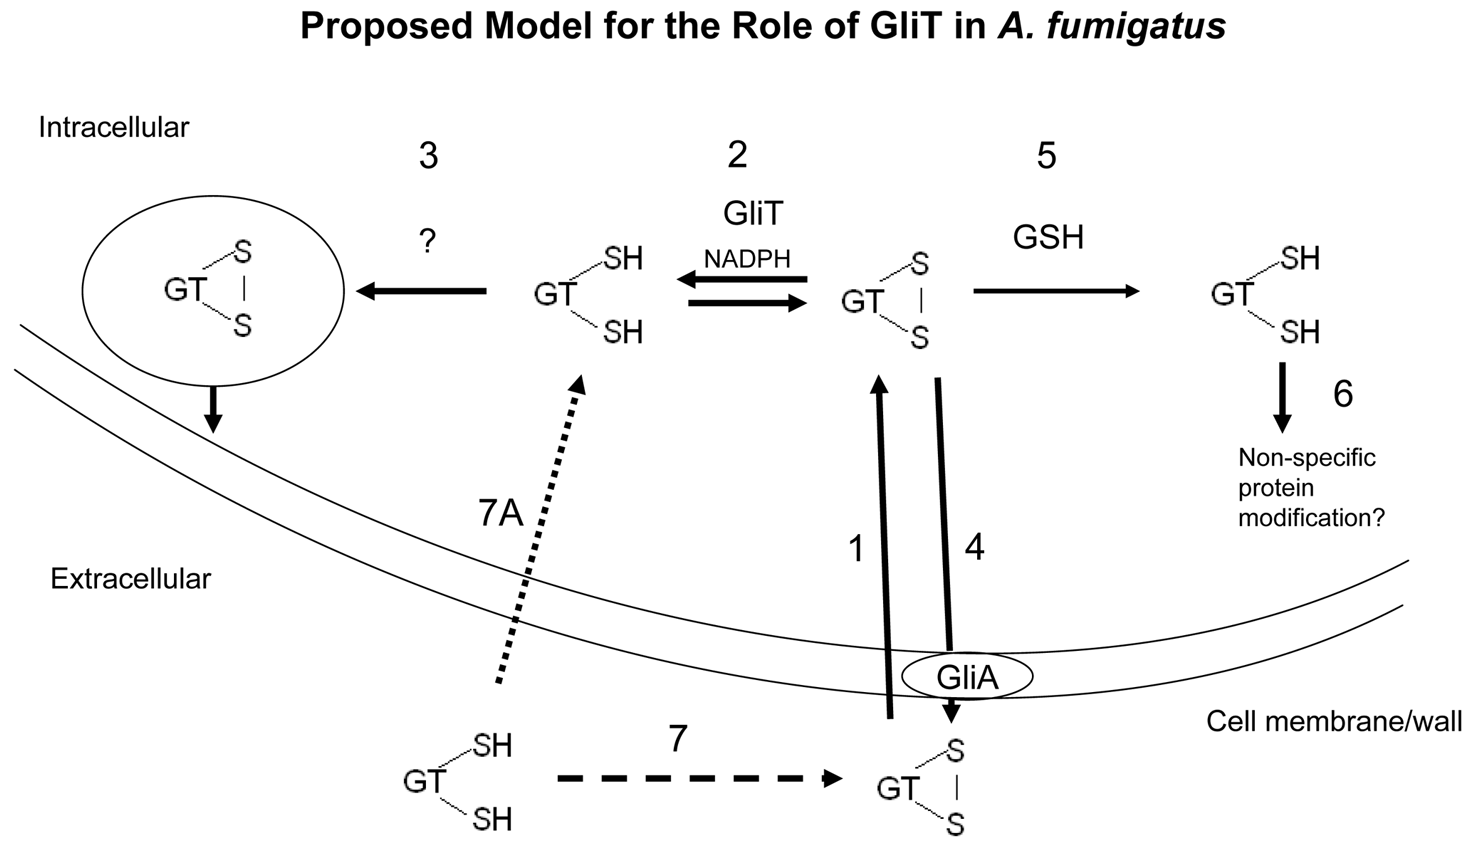 A proposed model for GliT functionality in <i>A. fumigatus</i> based on experimental observations.